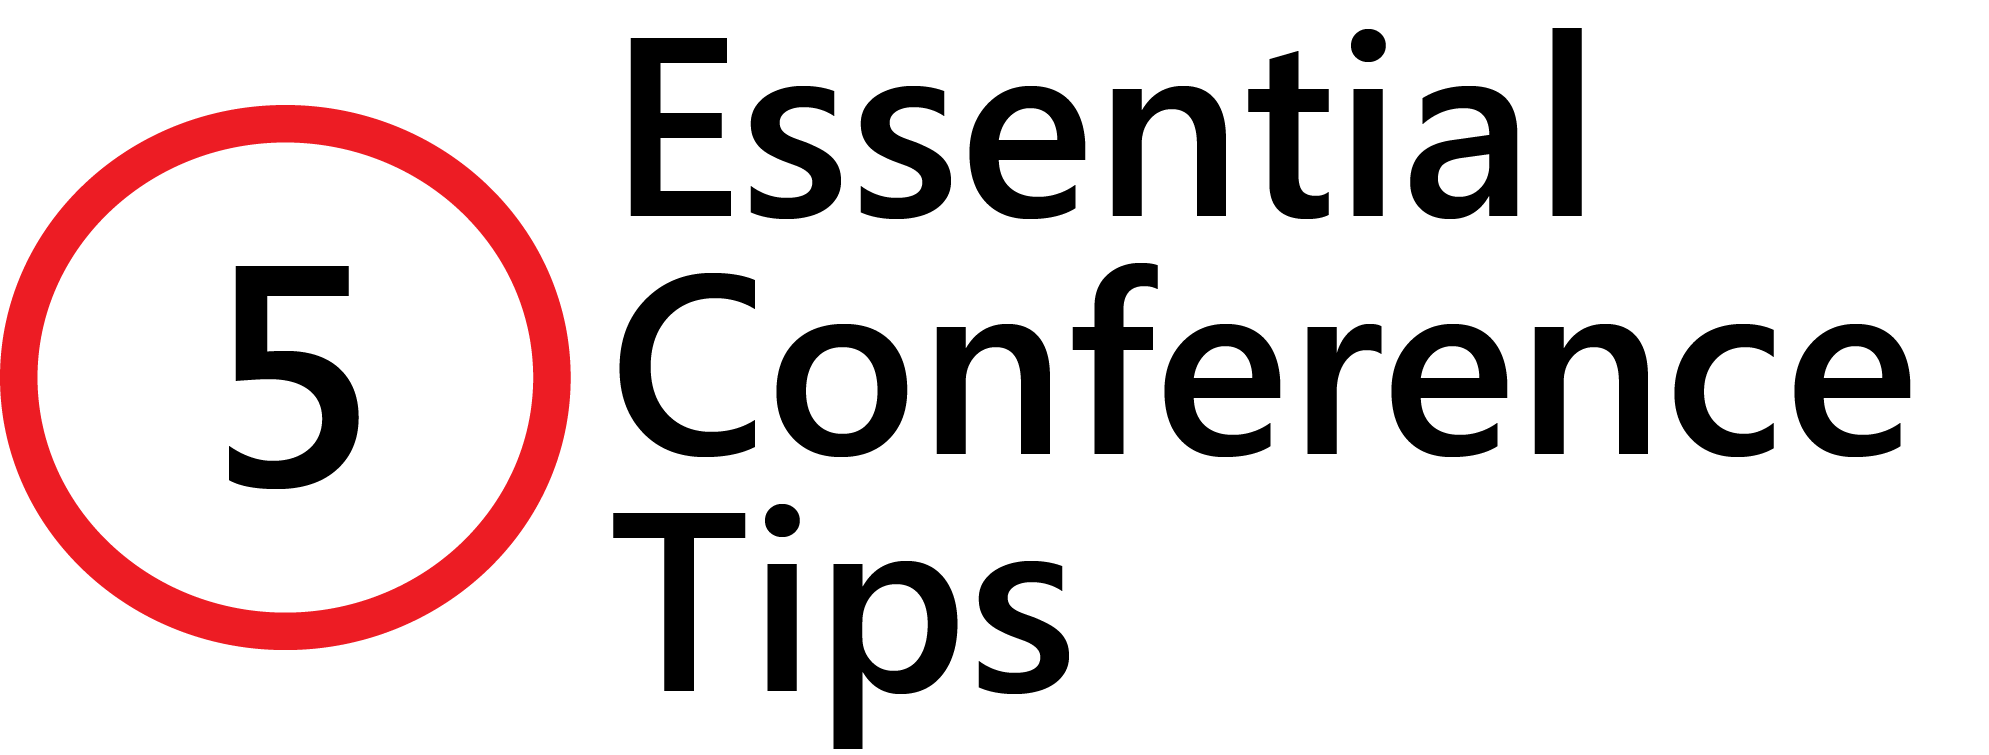 5_essential_conference_tips.png